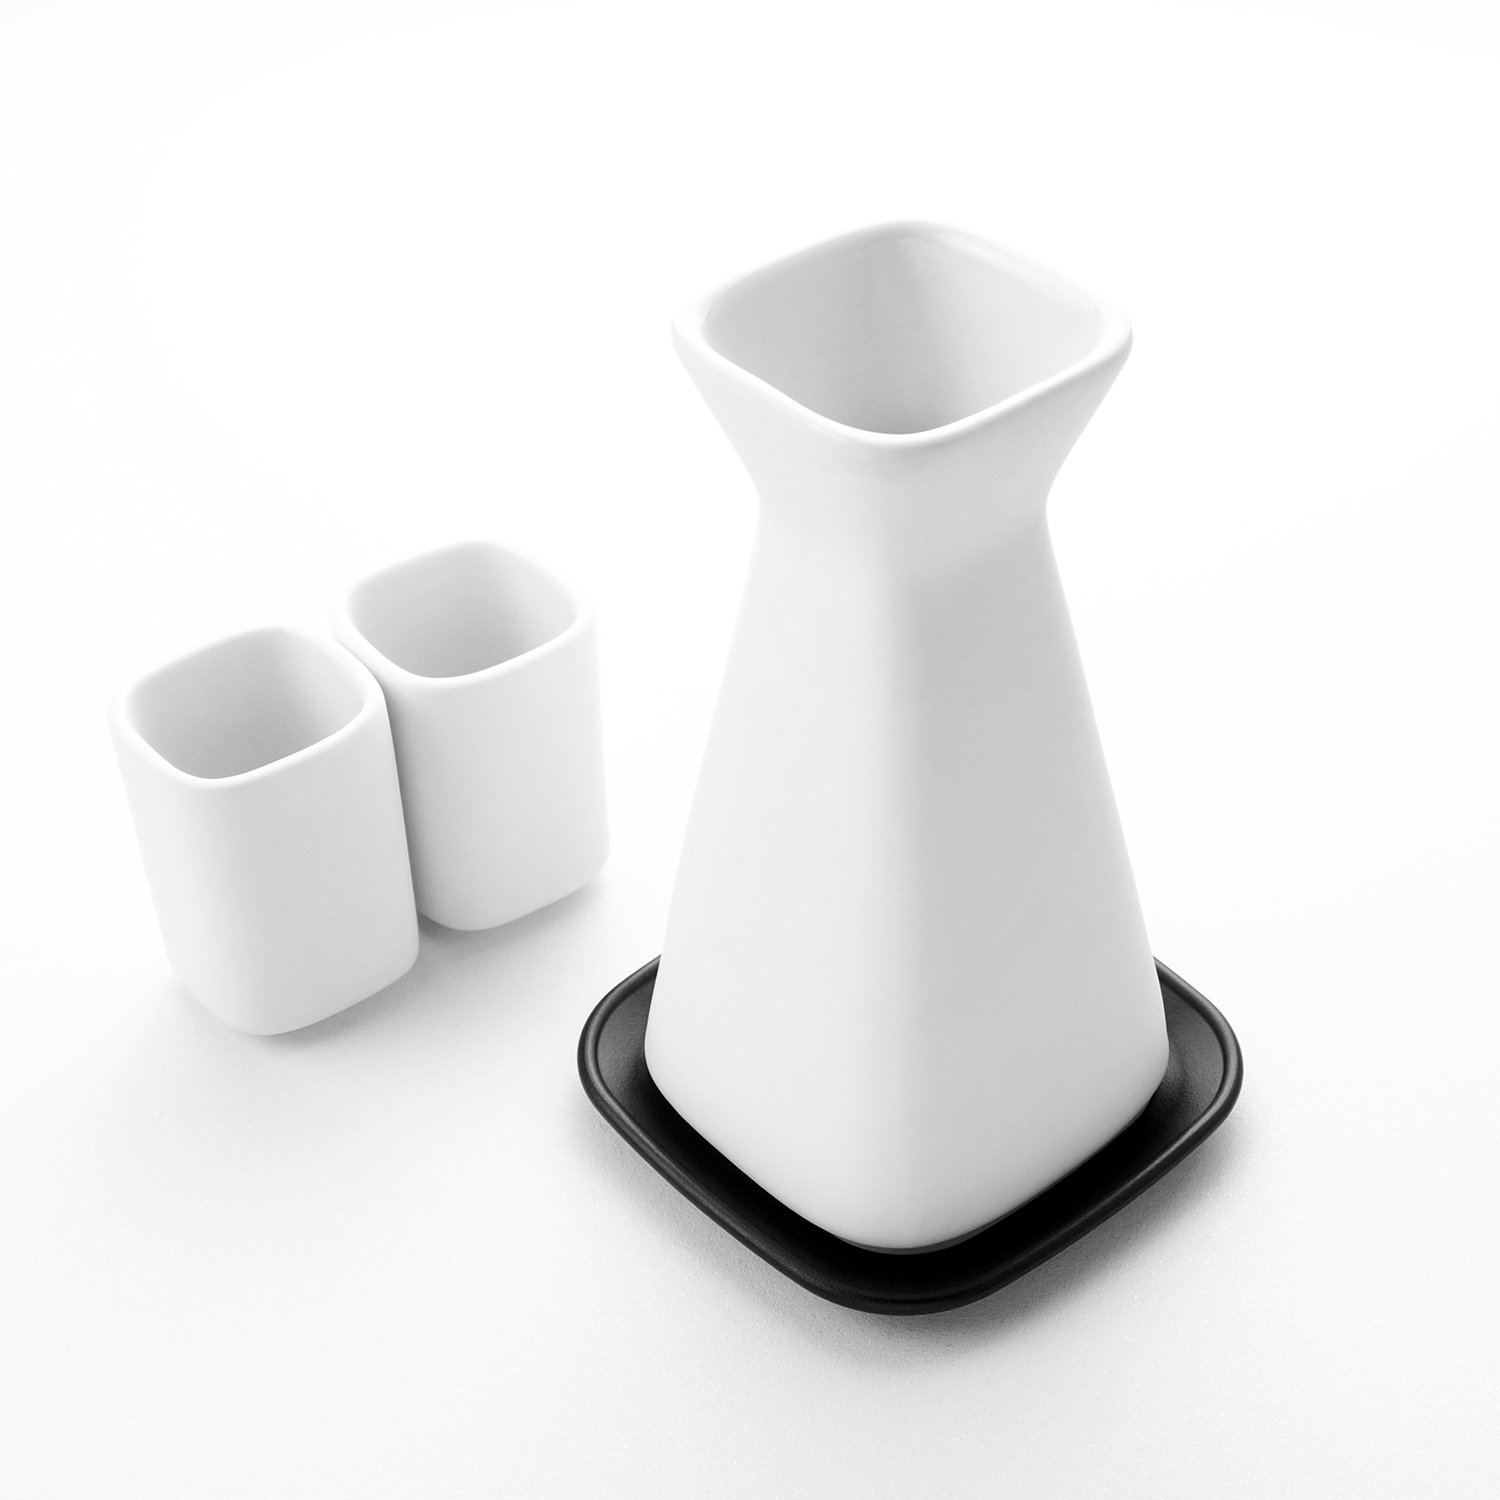 THAT! Heat That Microwavable Sake Set With Hot Plate that inventions KTE